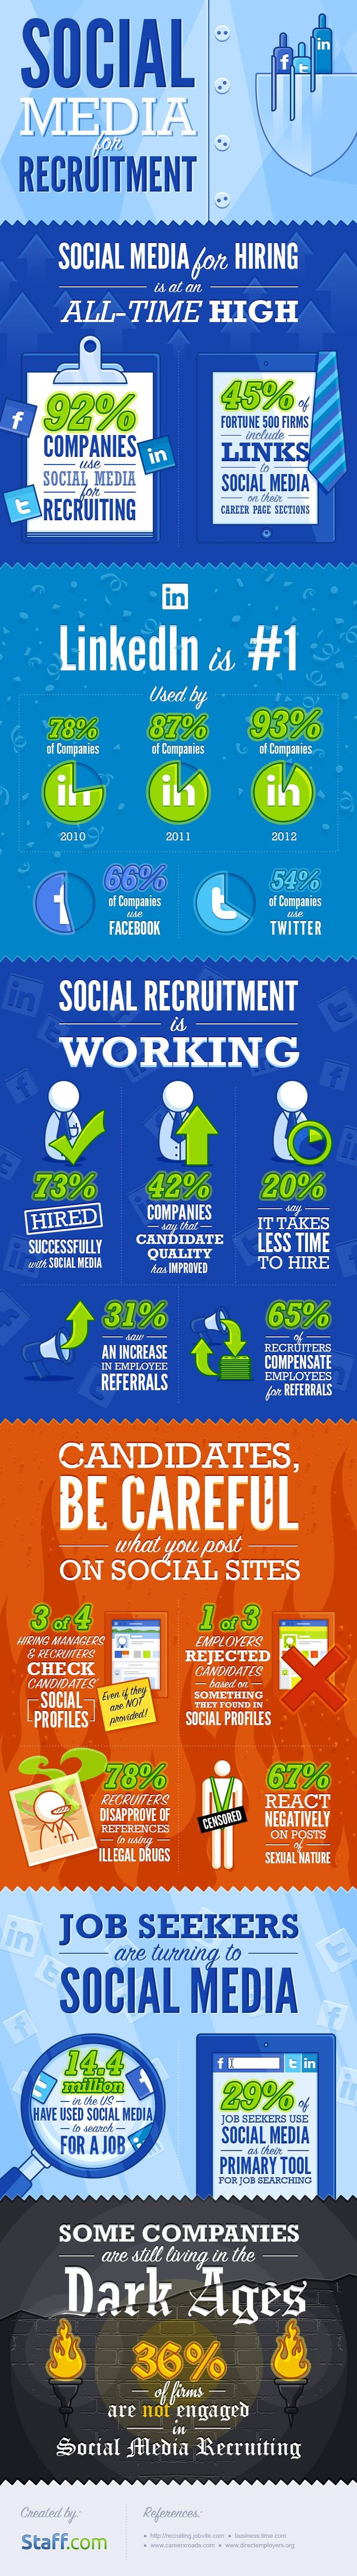 Social Media for Recruitment #infographic #SocialMedia #Recruitment